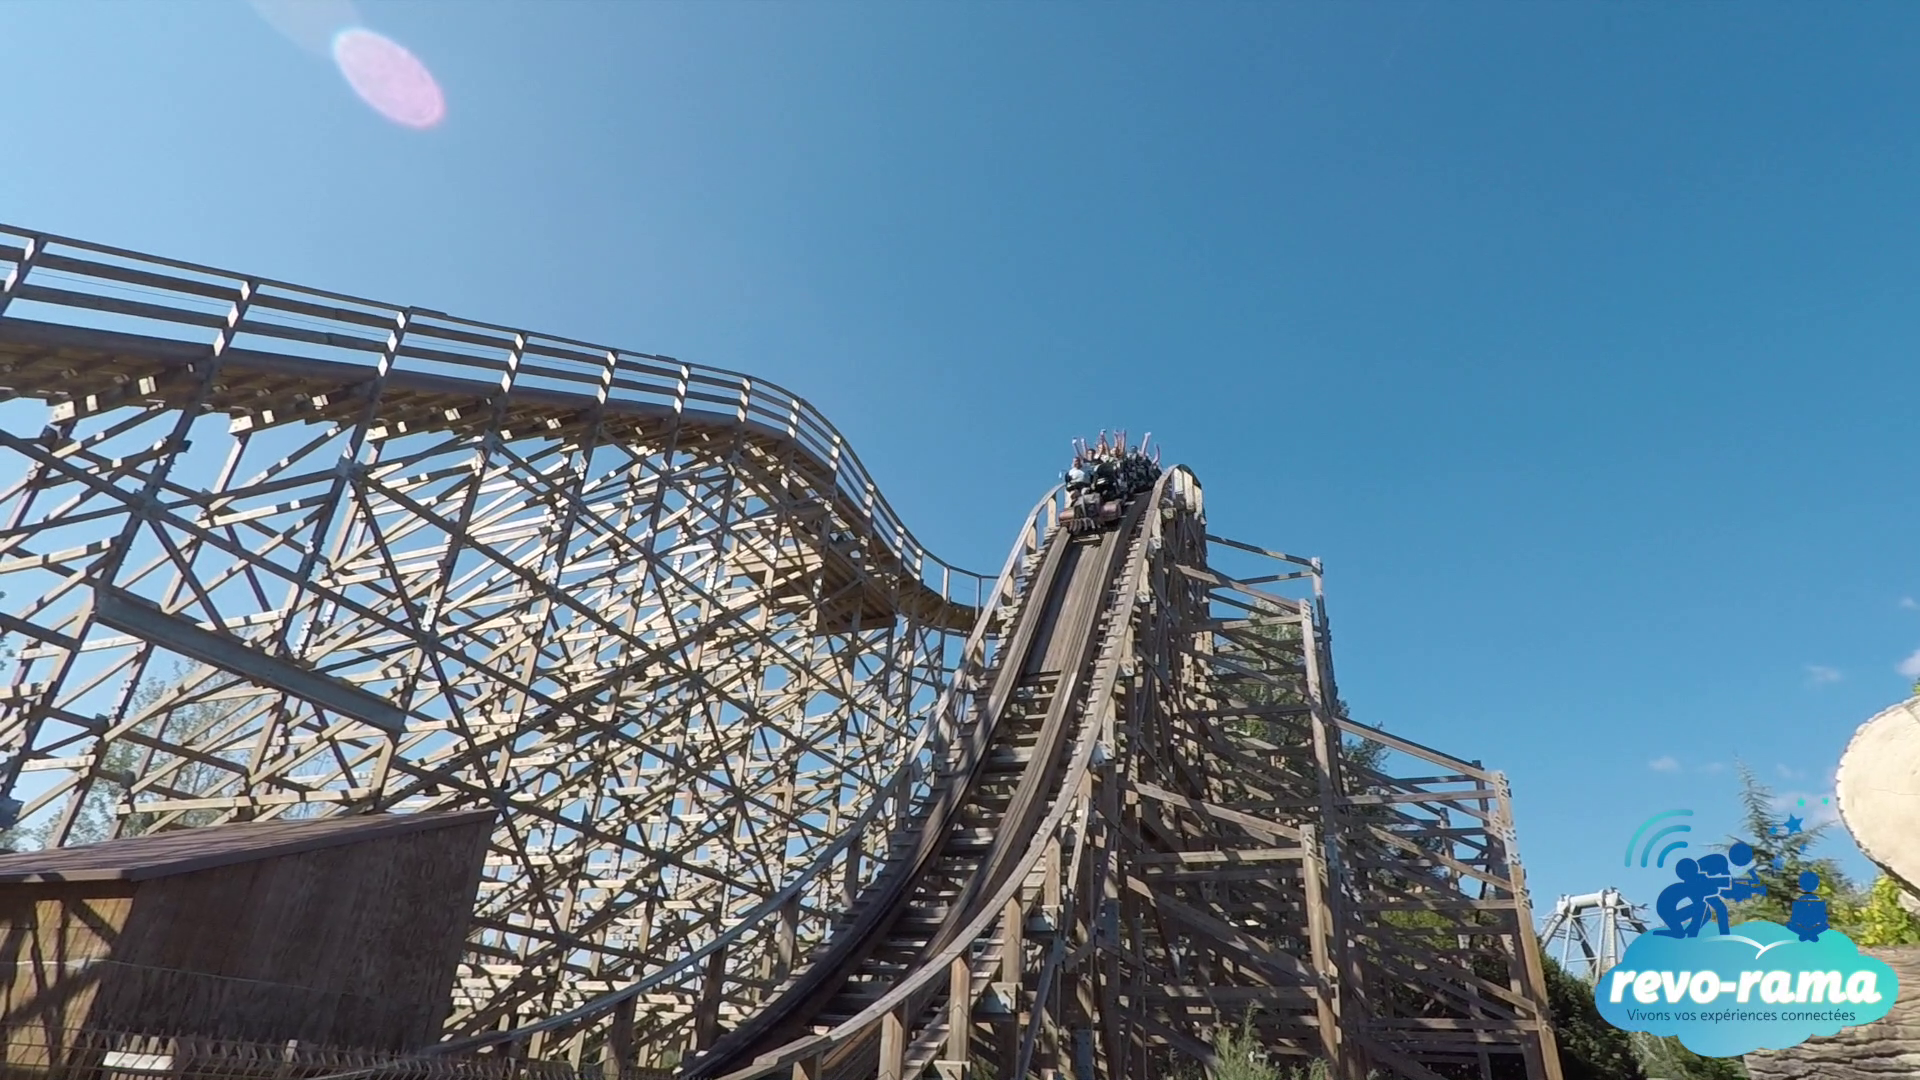 revo-rama-walibi-rhone-alpes-timber